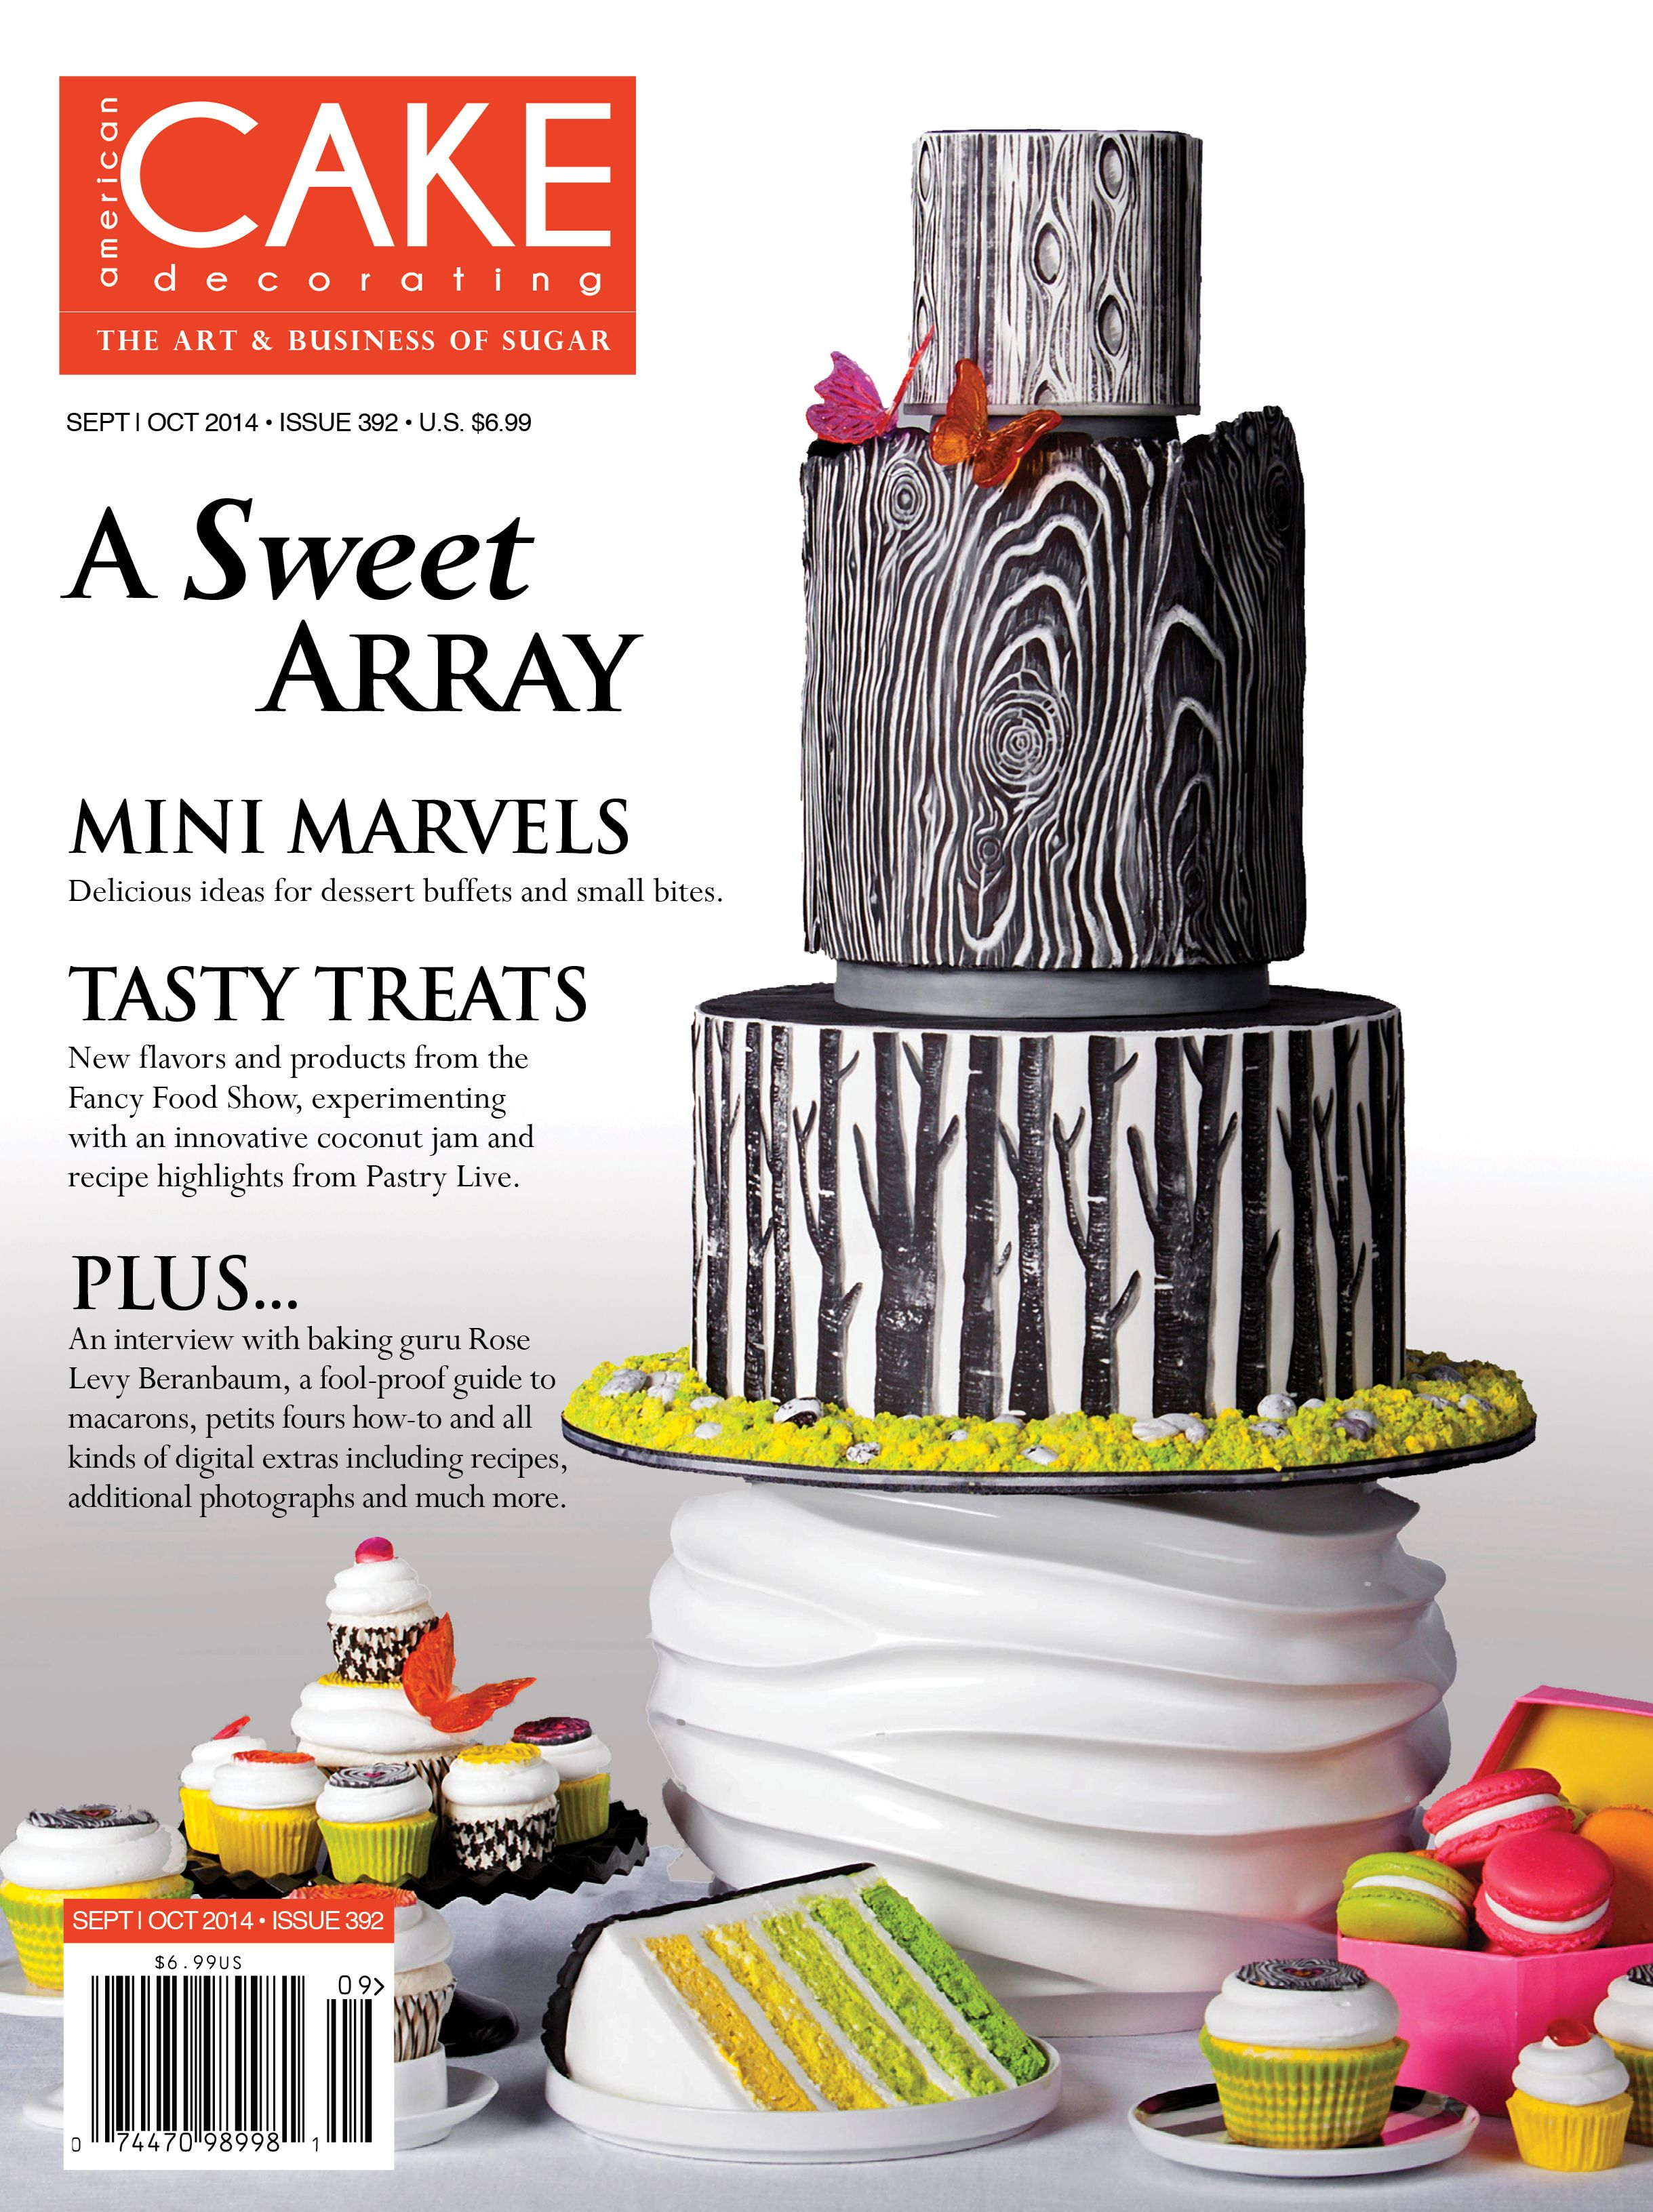 Sept/Oct 2014 Issue (With images) | Cake decorating magazine, American cake, Cookie recipes ...